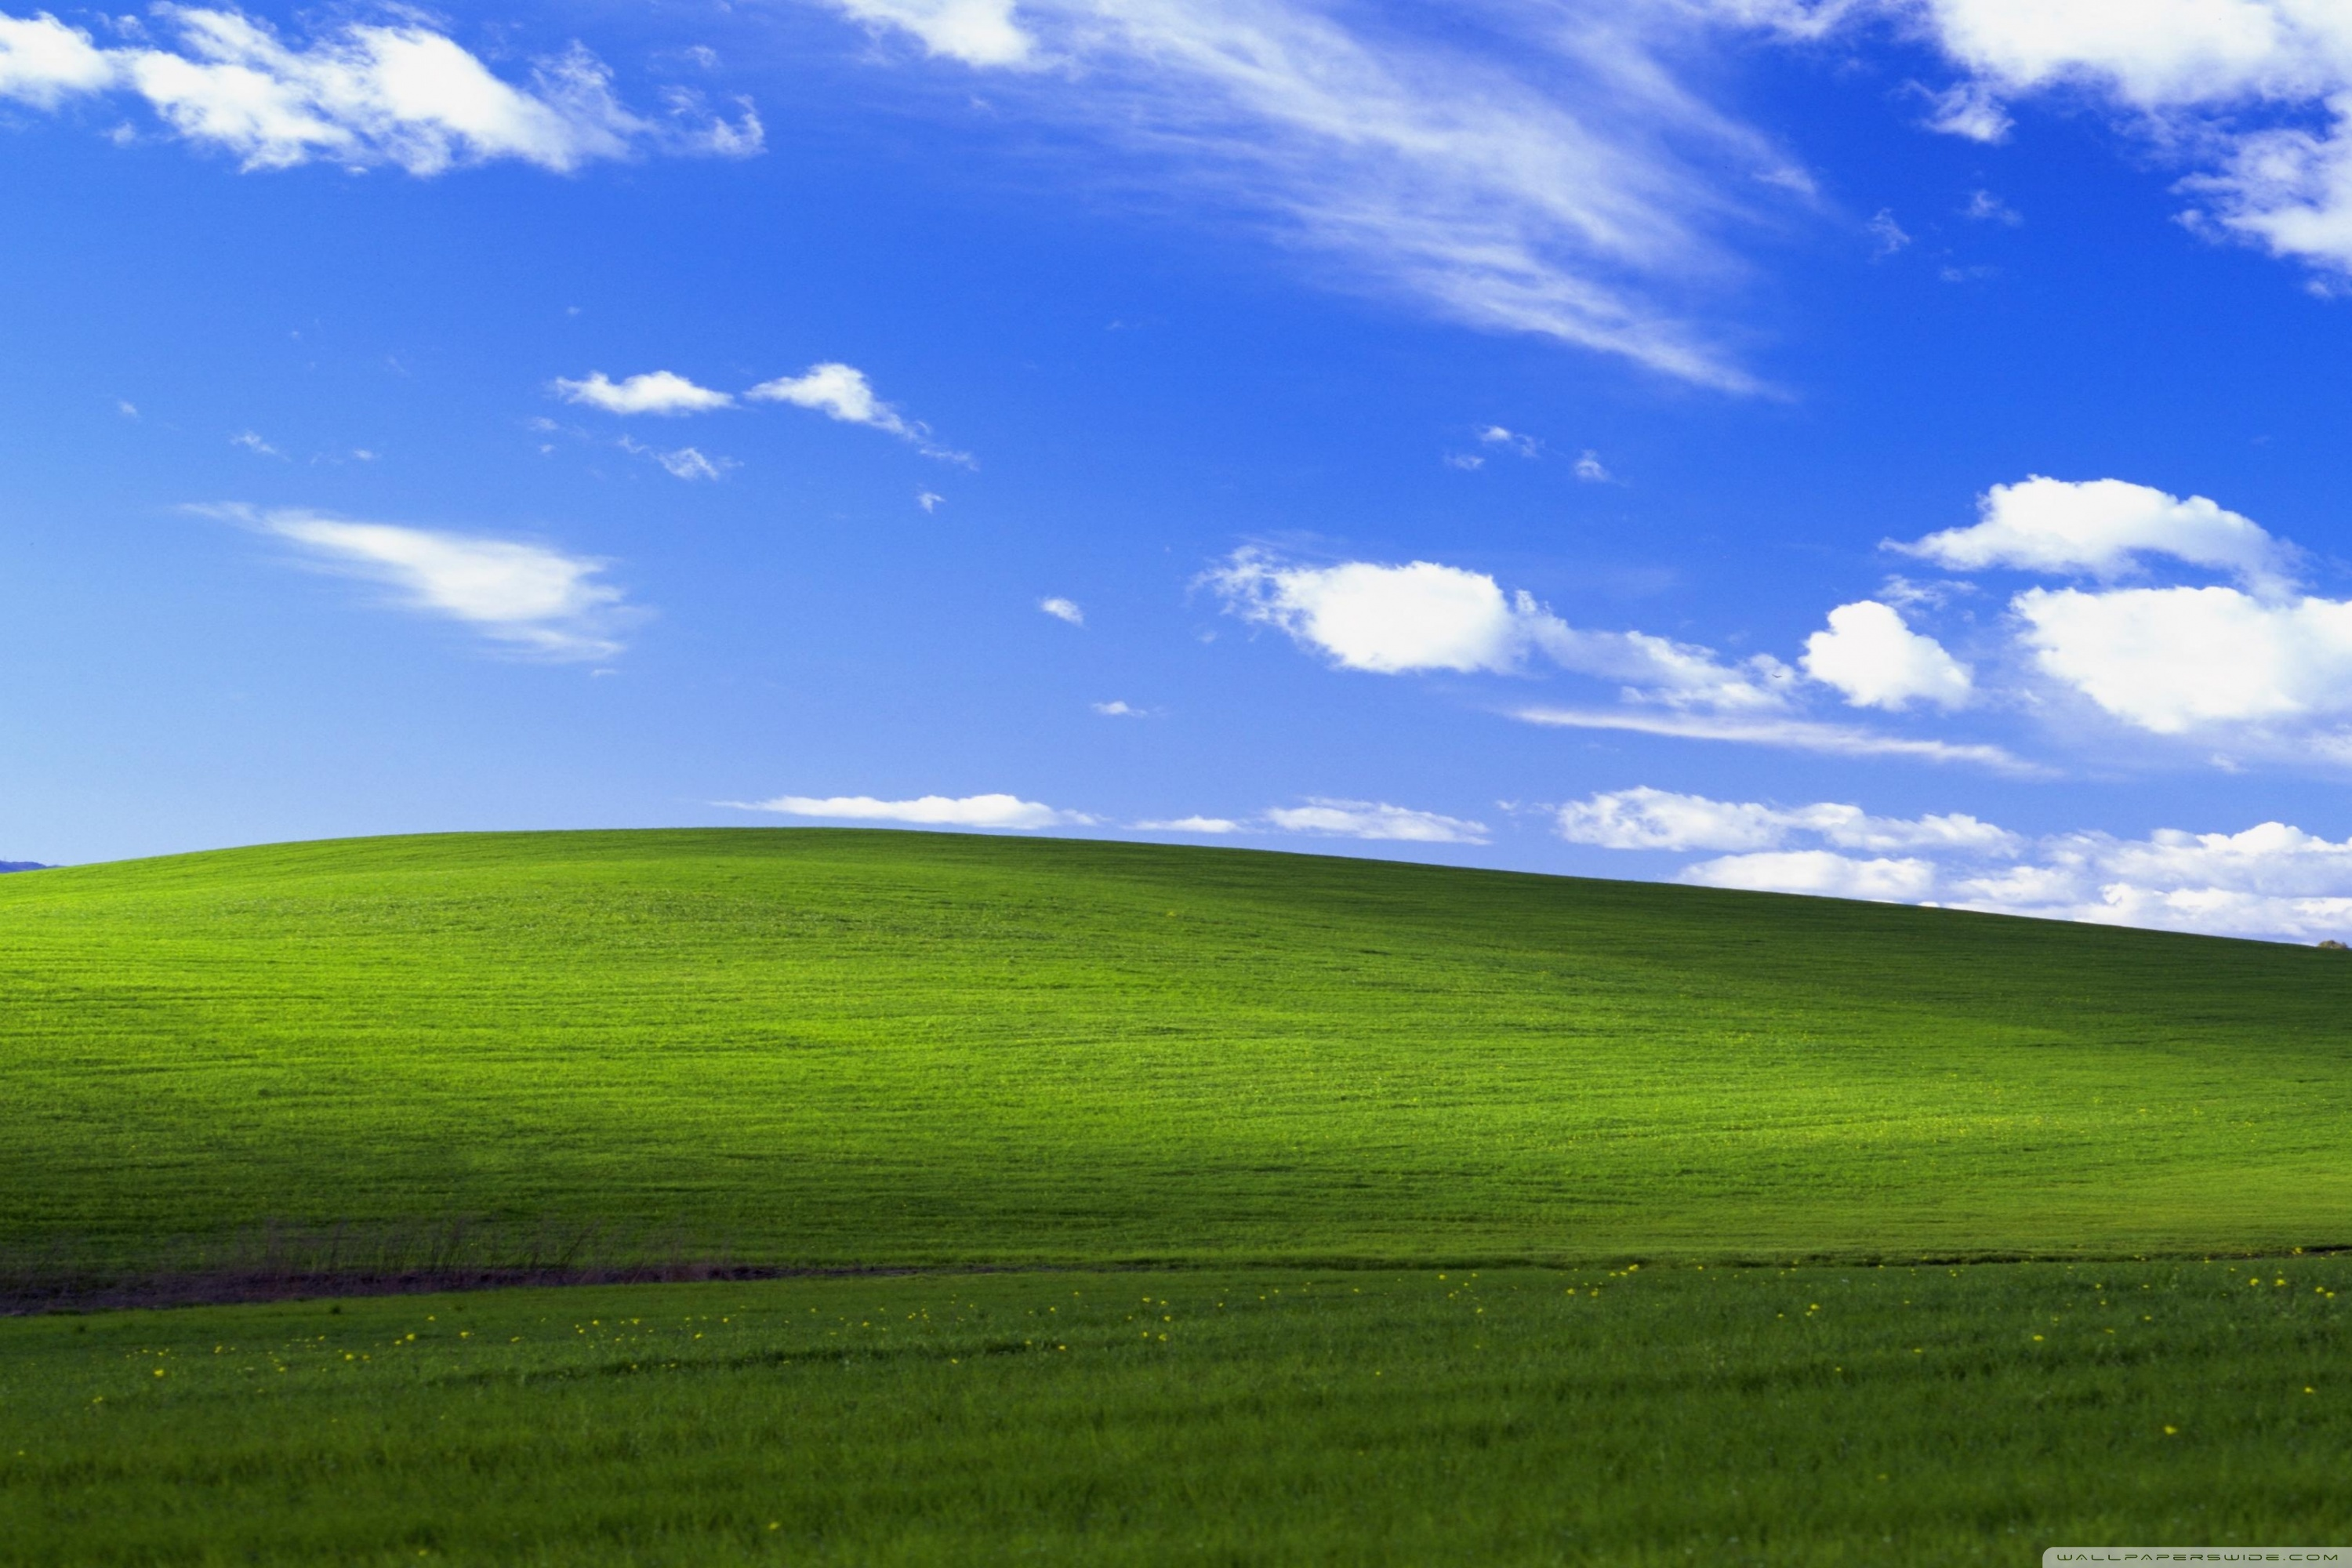 Windows XP Ultra HD Desktop Background Wallpaper for 4K UHD TV 3000x2000